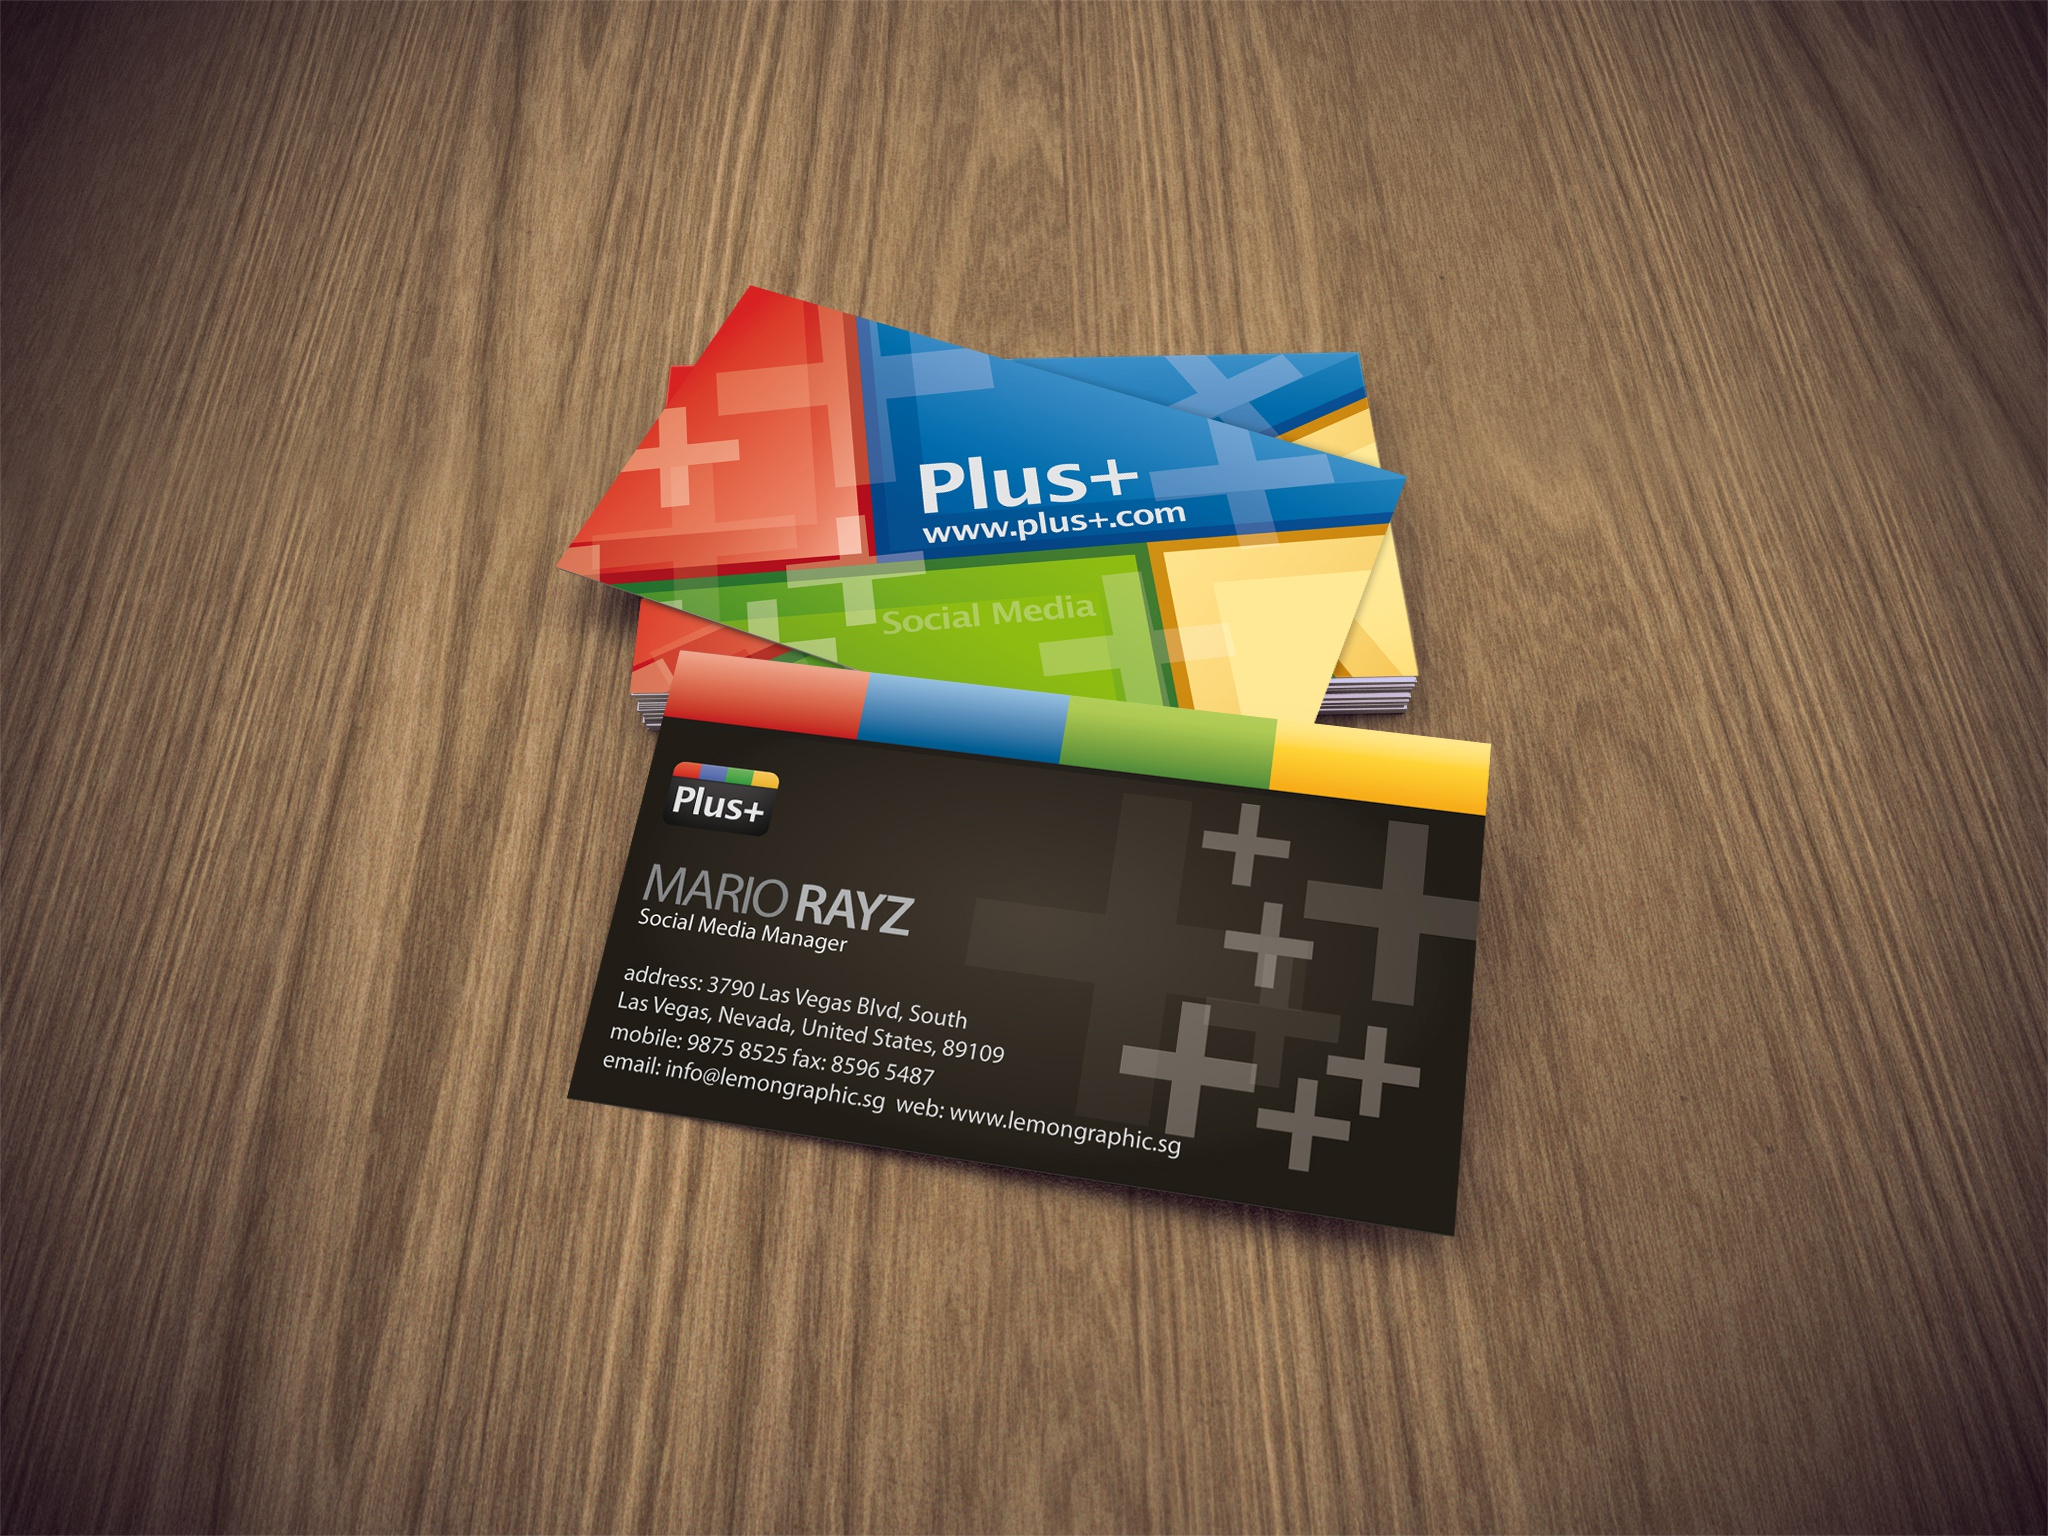 Inspirational Pics Of Business Card Las Vegas - Business Cards and ...